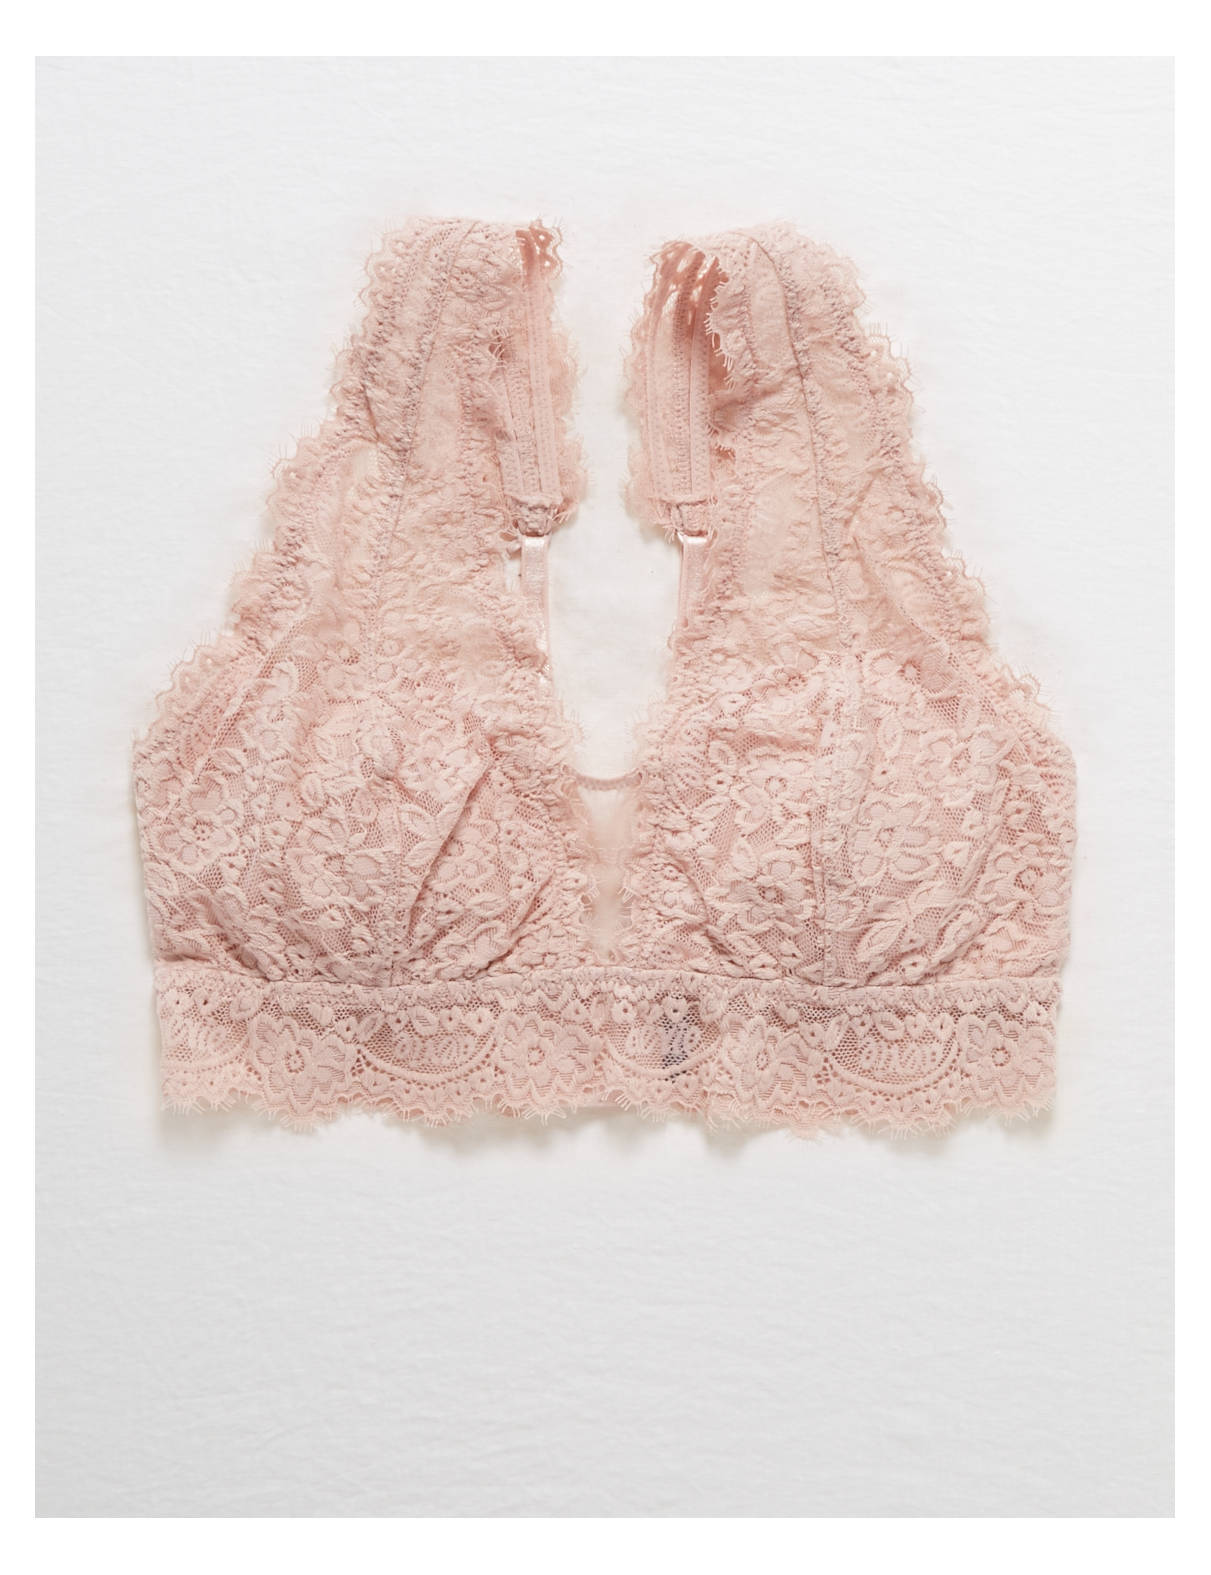 32dafea26521e This review is fromAerie Romantic Lace Plunge Bralette.